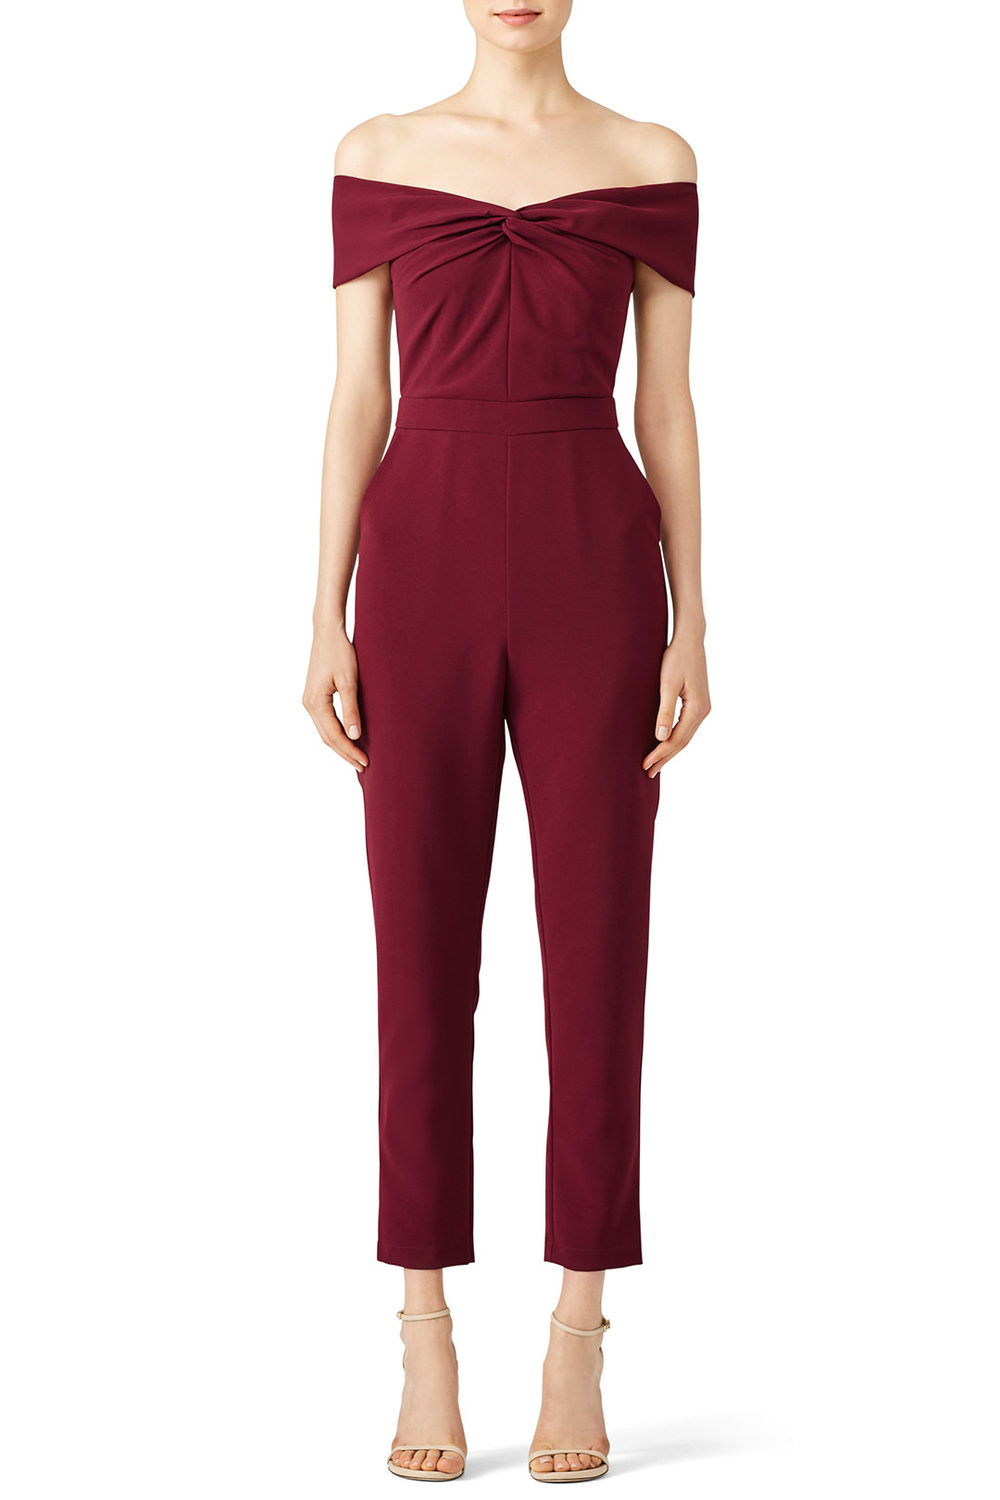 Adelyn Rae Karlie Woven Jumpsuit - I wore this for Christmas last year and I loved it. Would be awesome for GNO too!